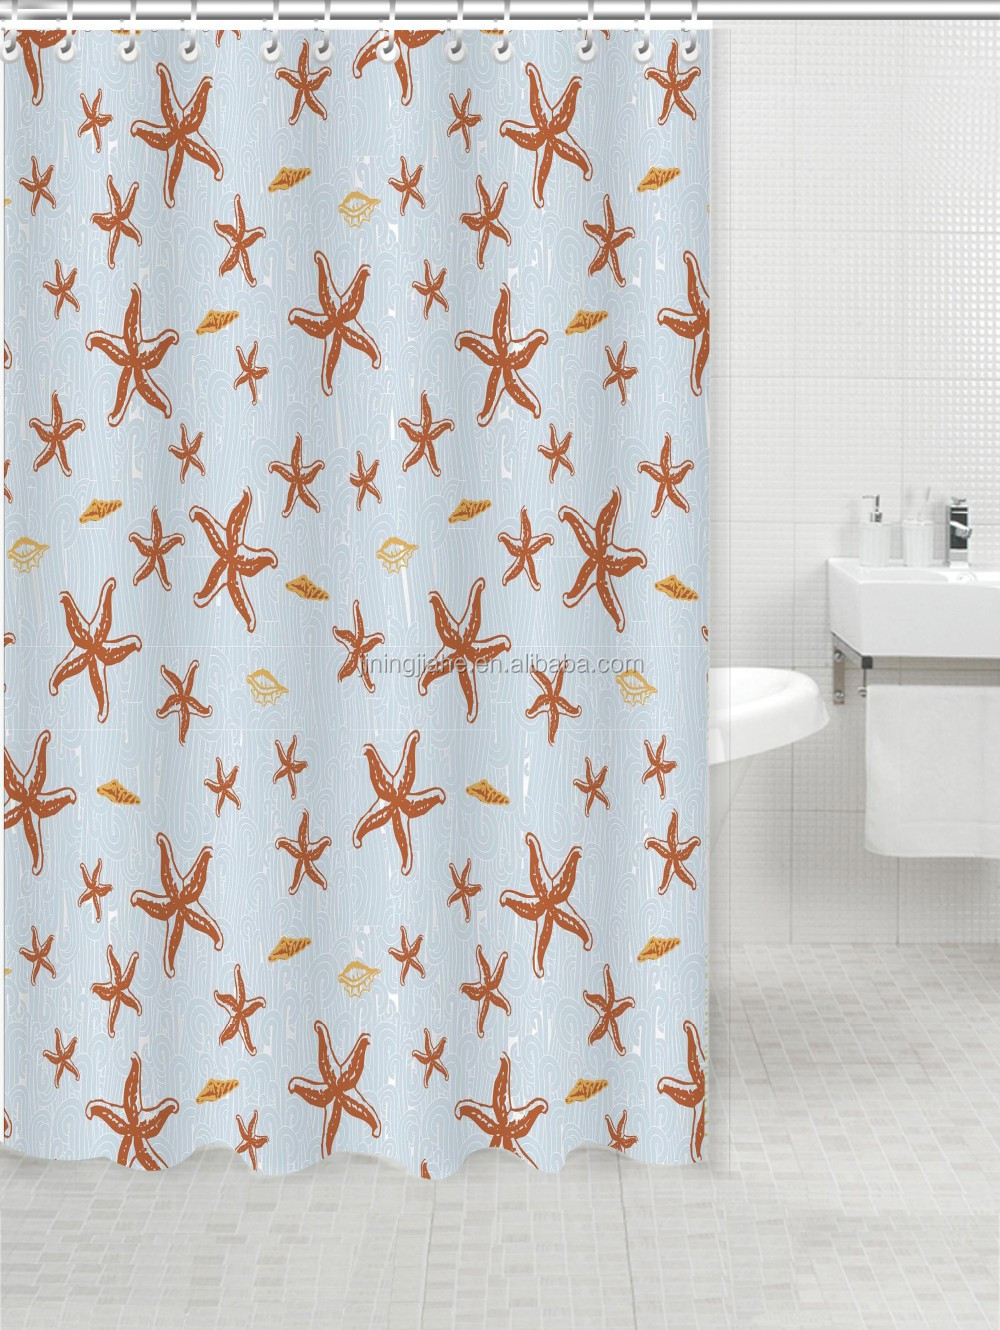 Orange starfish printed polyester shower curtain, bath curtain